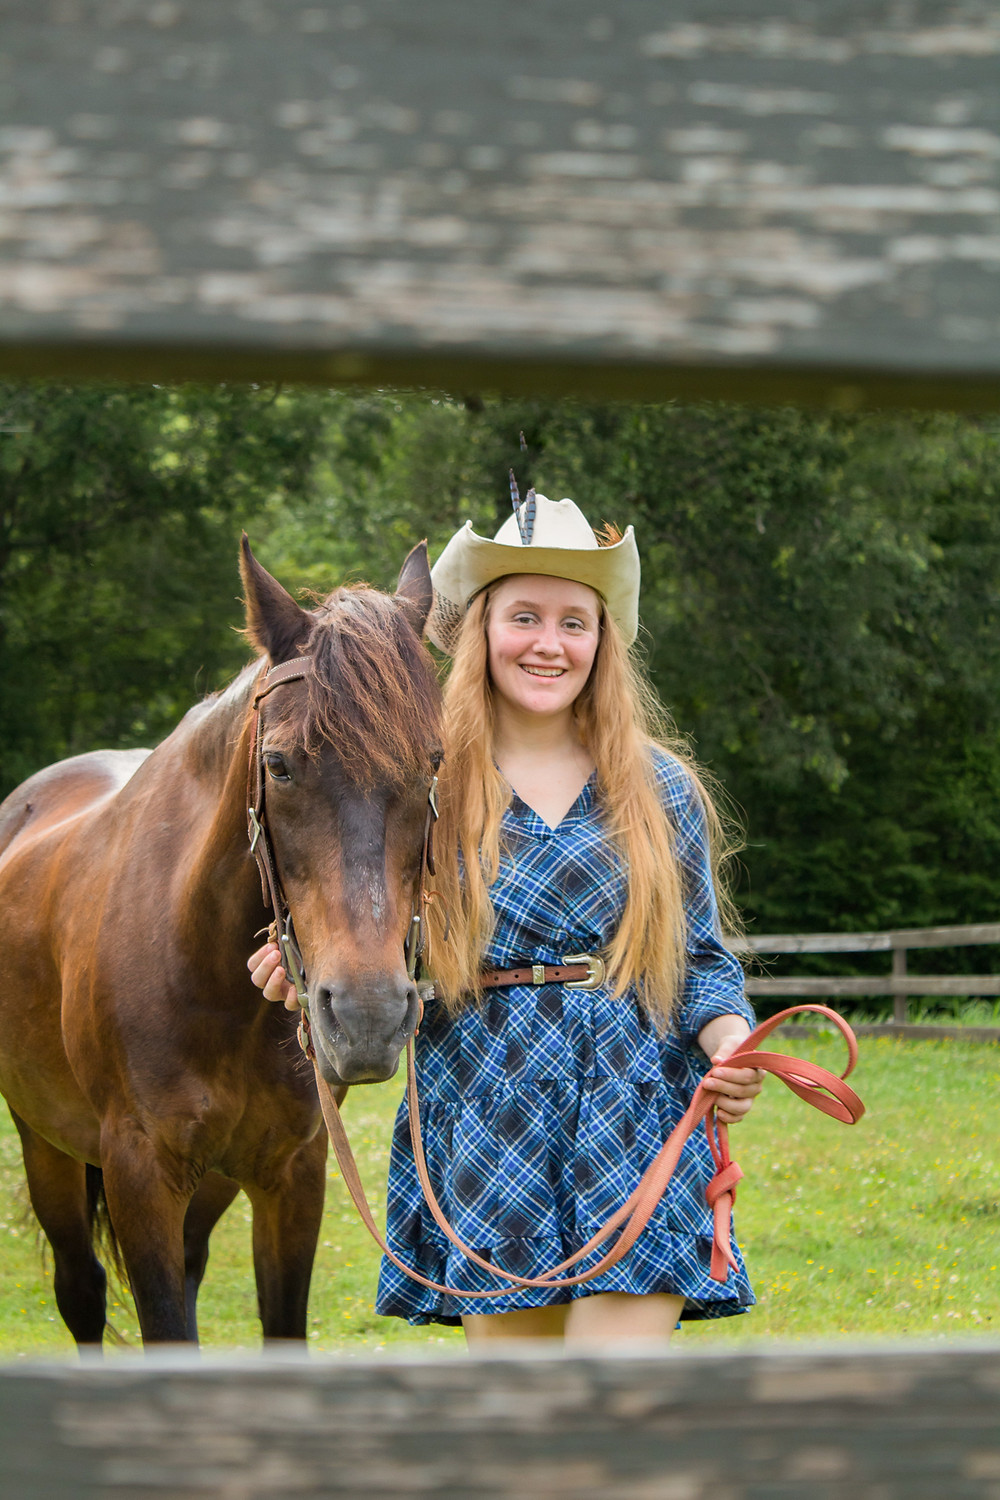 A high school senior posing with her favorite horse at a summer camp